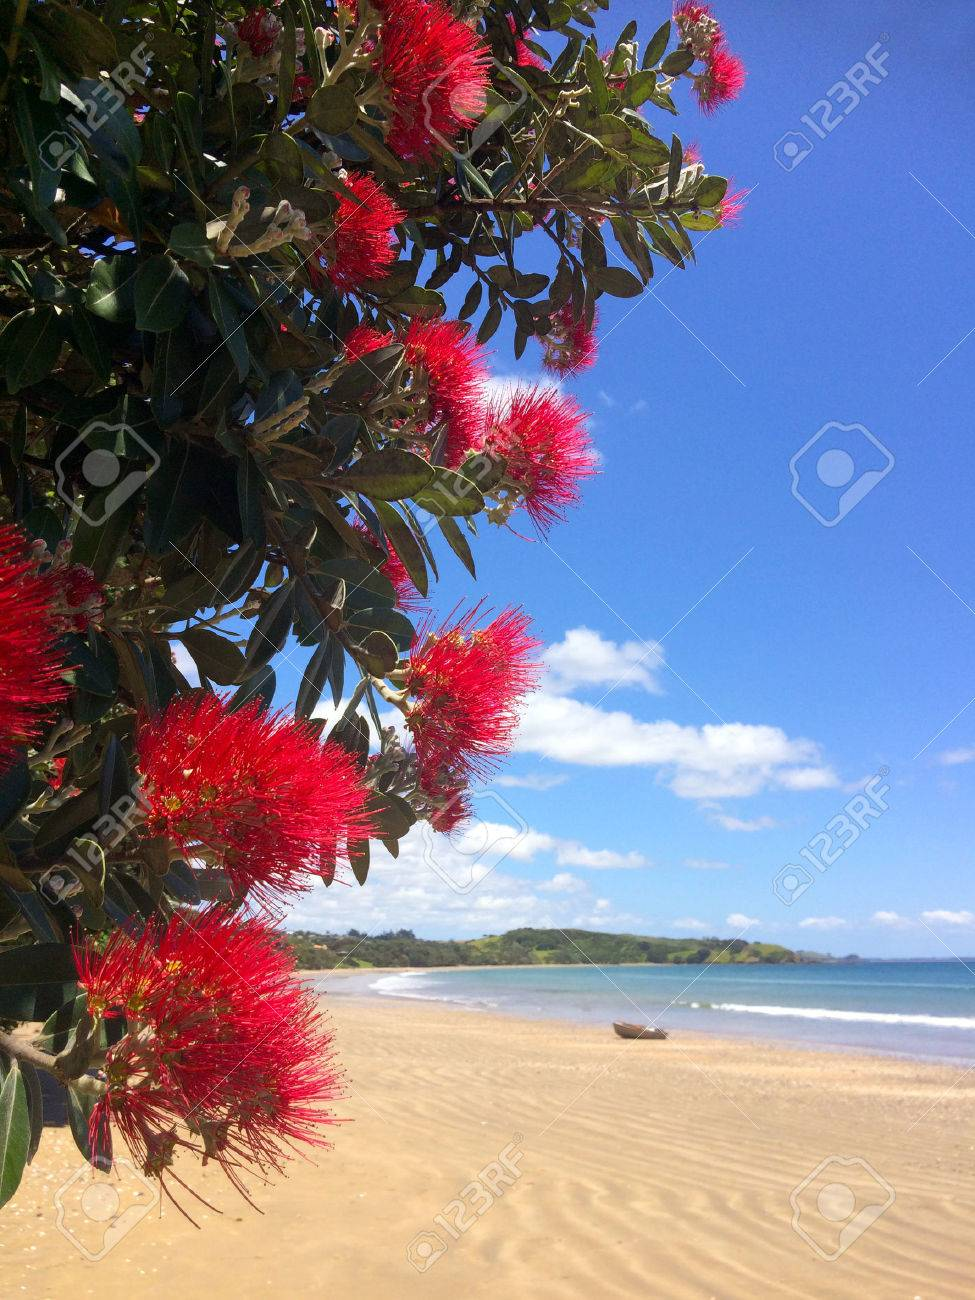 Pohutukawa red flowers blossom on the month of December over a sandy beach with a small fishing boat doubtless bay New Zealand. - 49925420